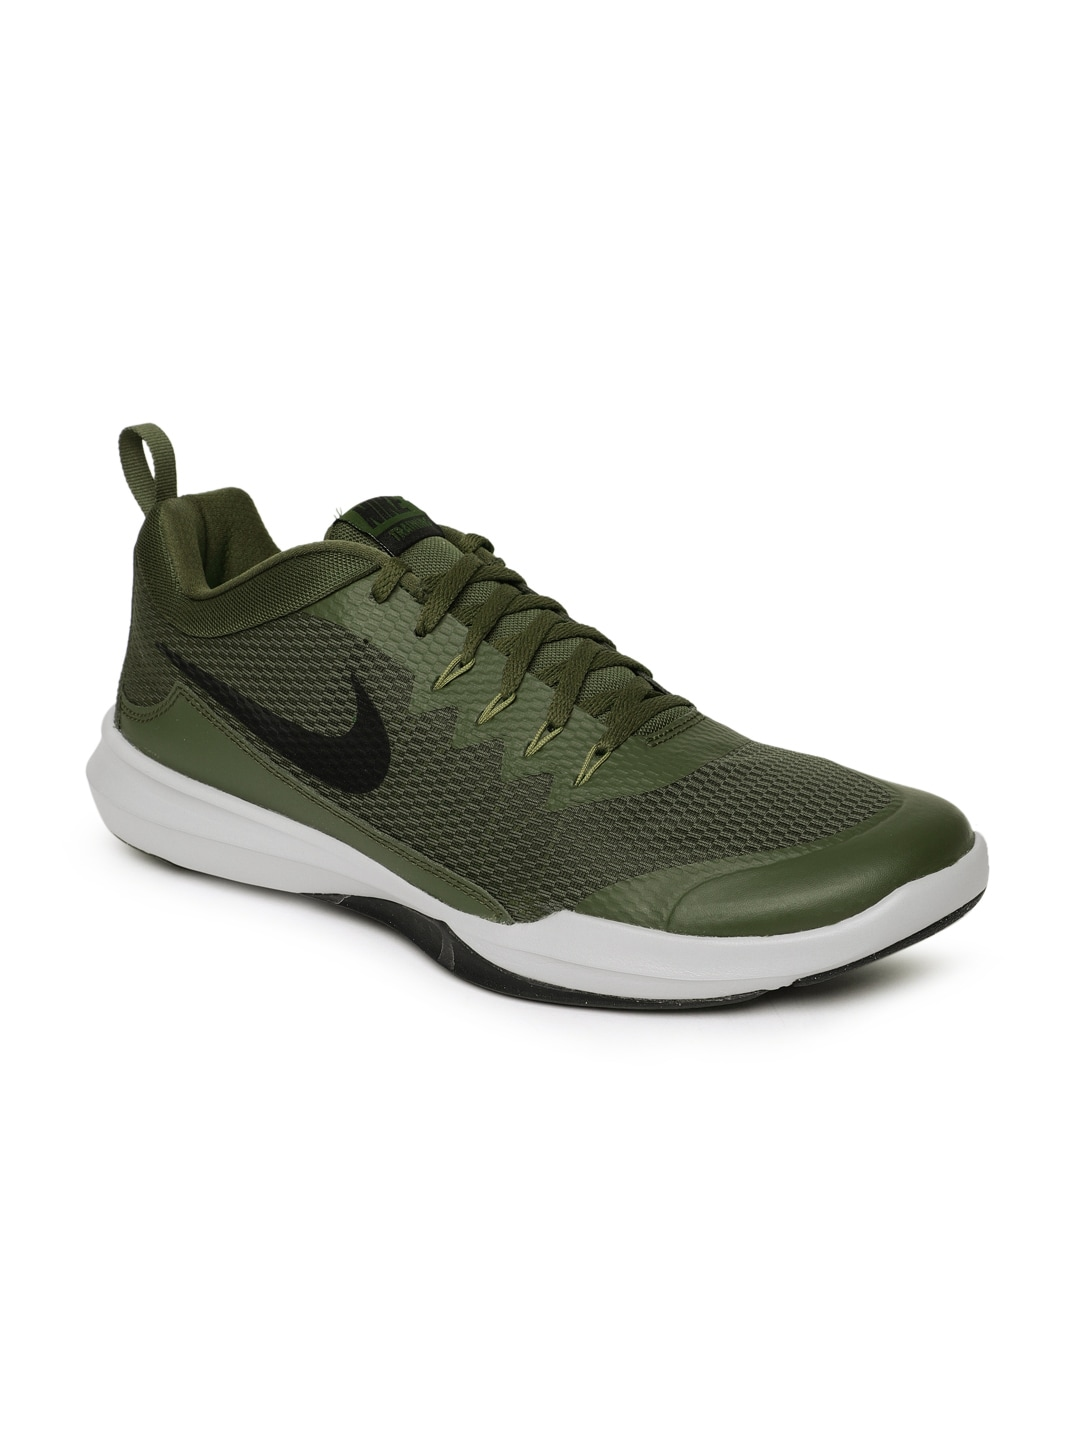 Nike Shoes - Buy Nike Shoes for Men   Women Online  c6b07cf04